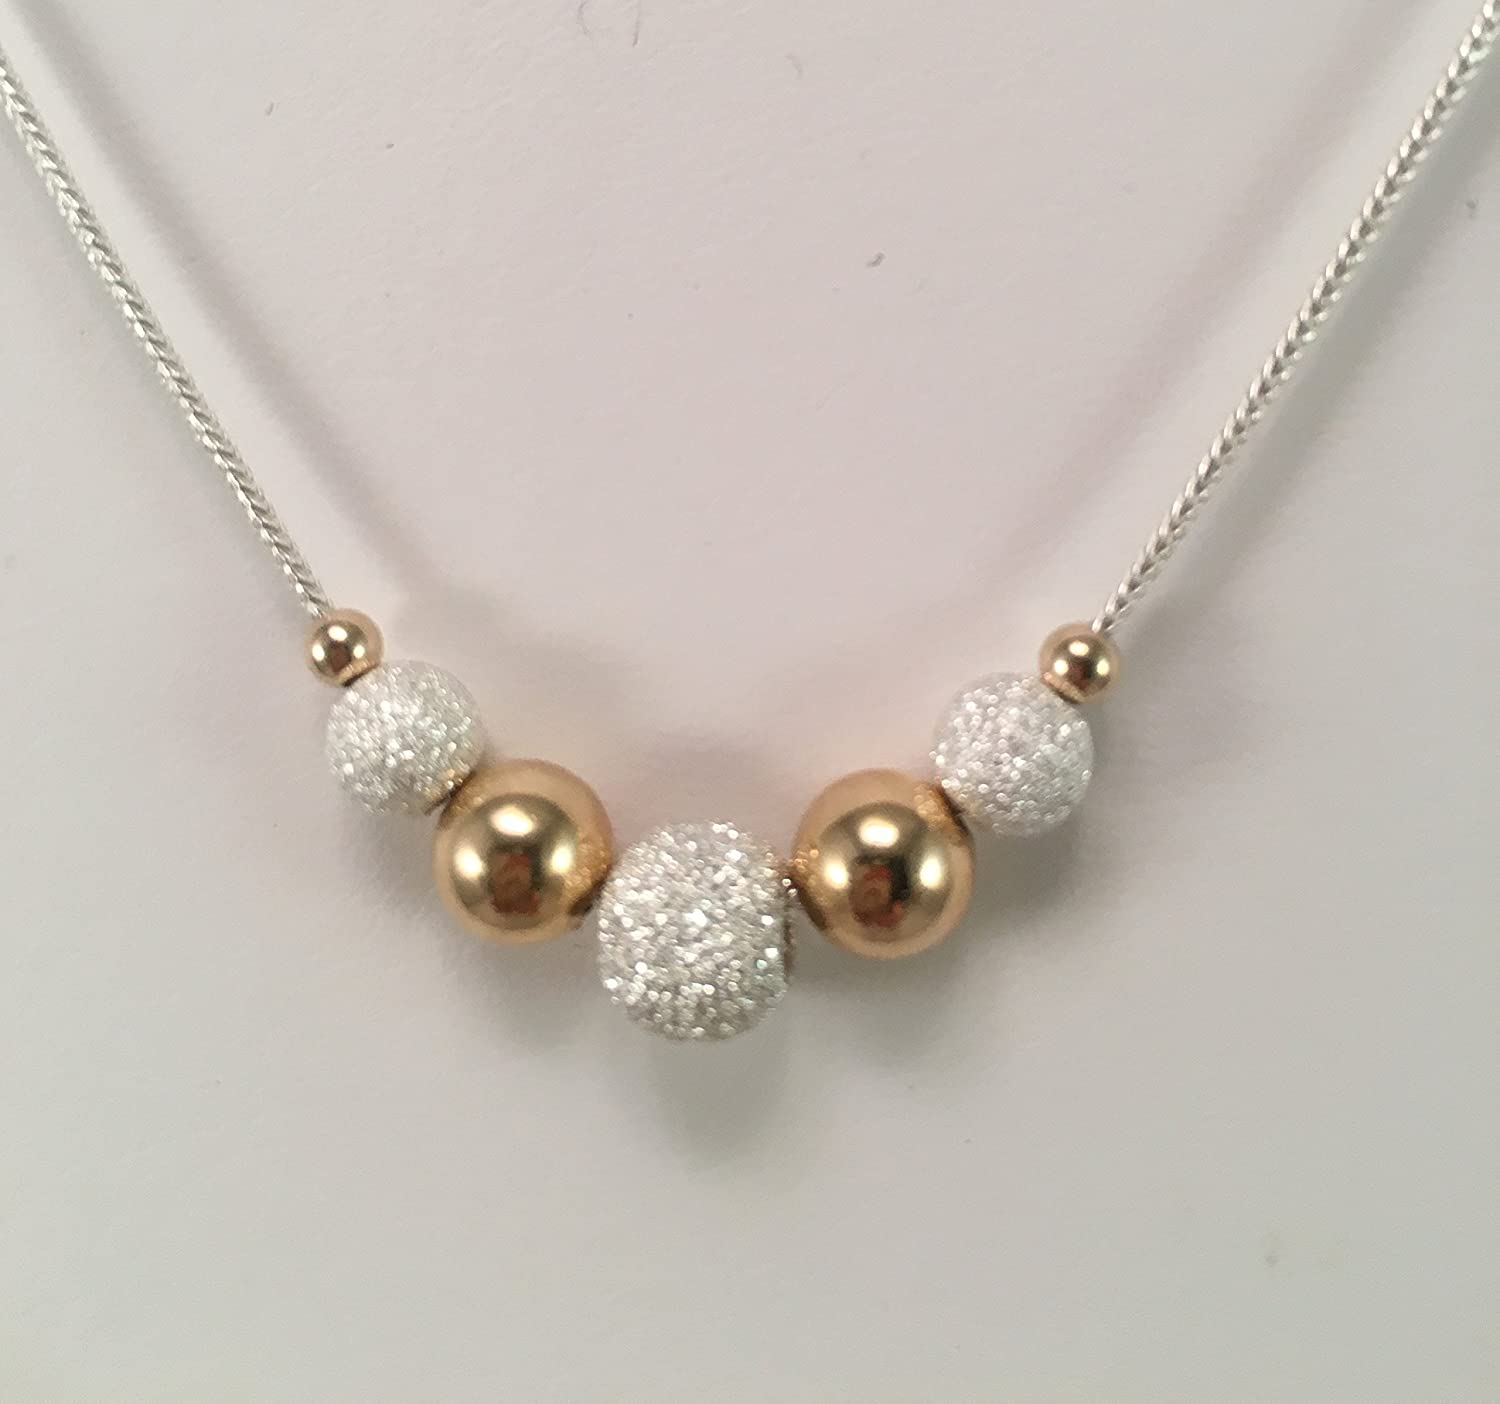 Soldering 14k Gold and Silver Necklace Beaded Cheap super special price